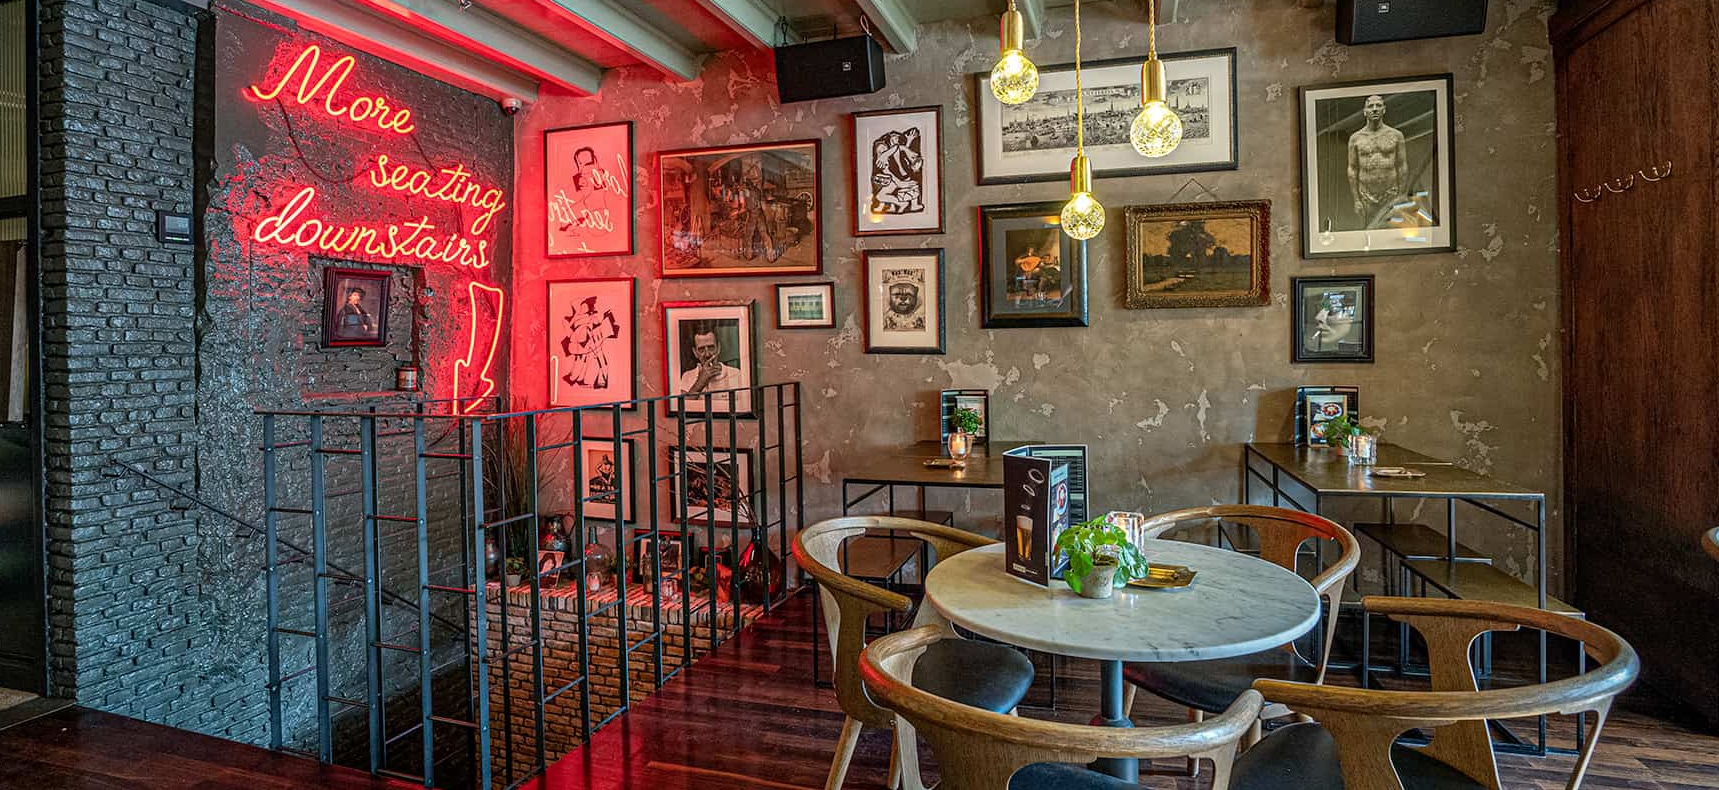 Coffeeshopamsterdam Cafe Interior Photography by Paul James